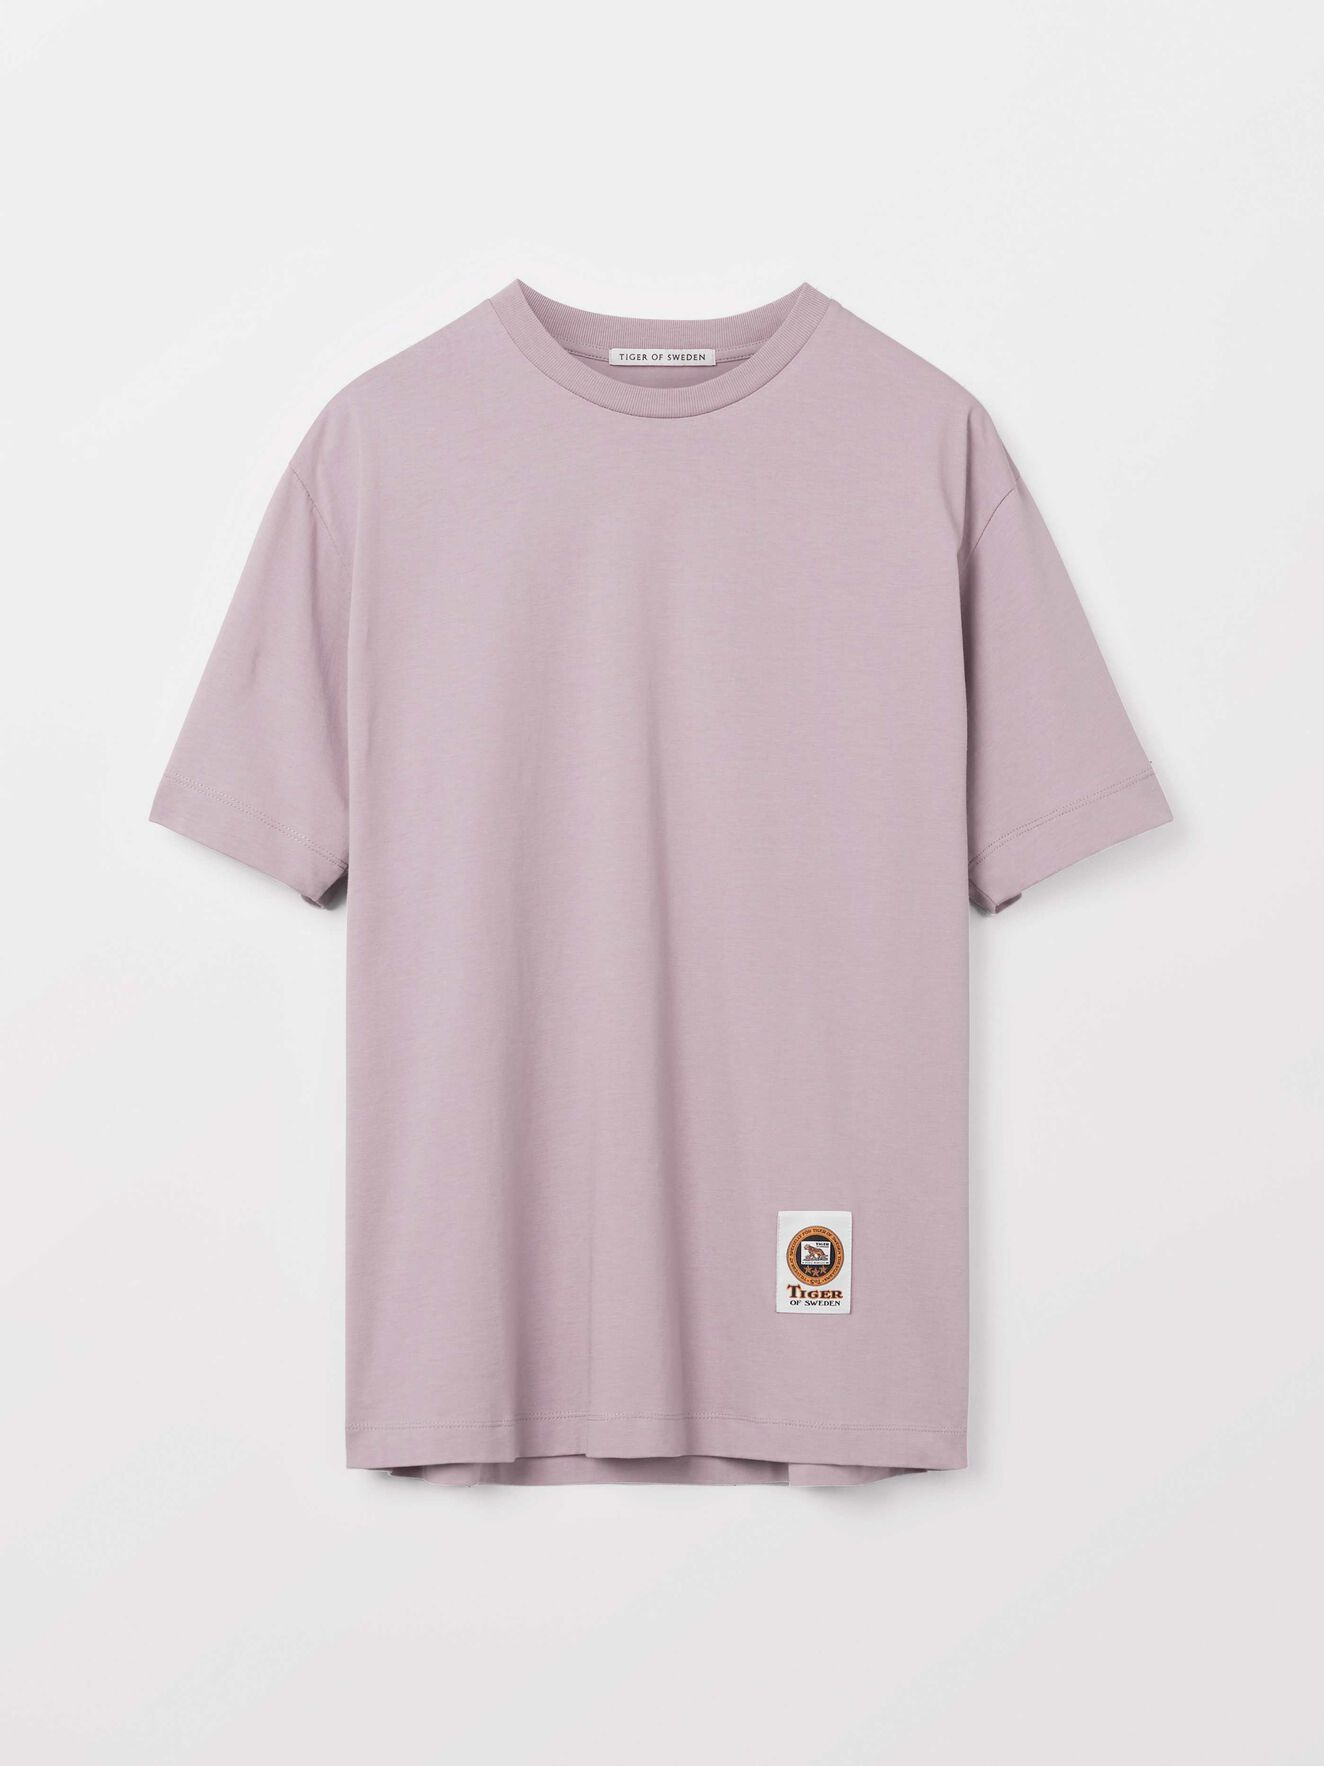 Dellana T-Shirt in Mulberry Dream from Tiger of Sweden